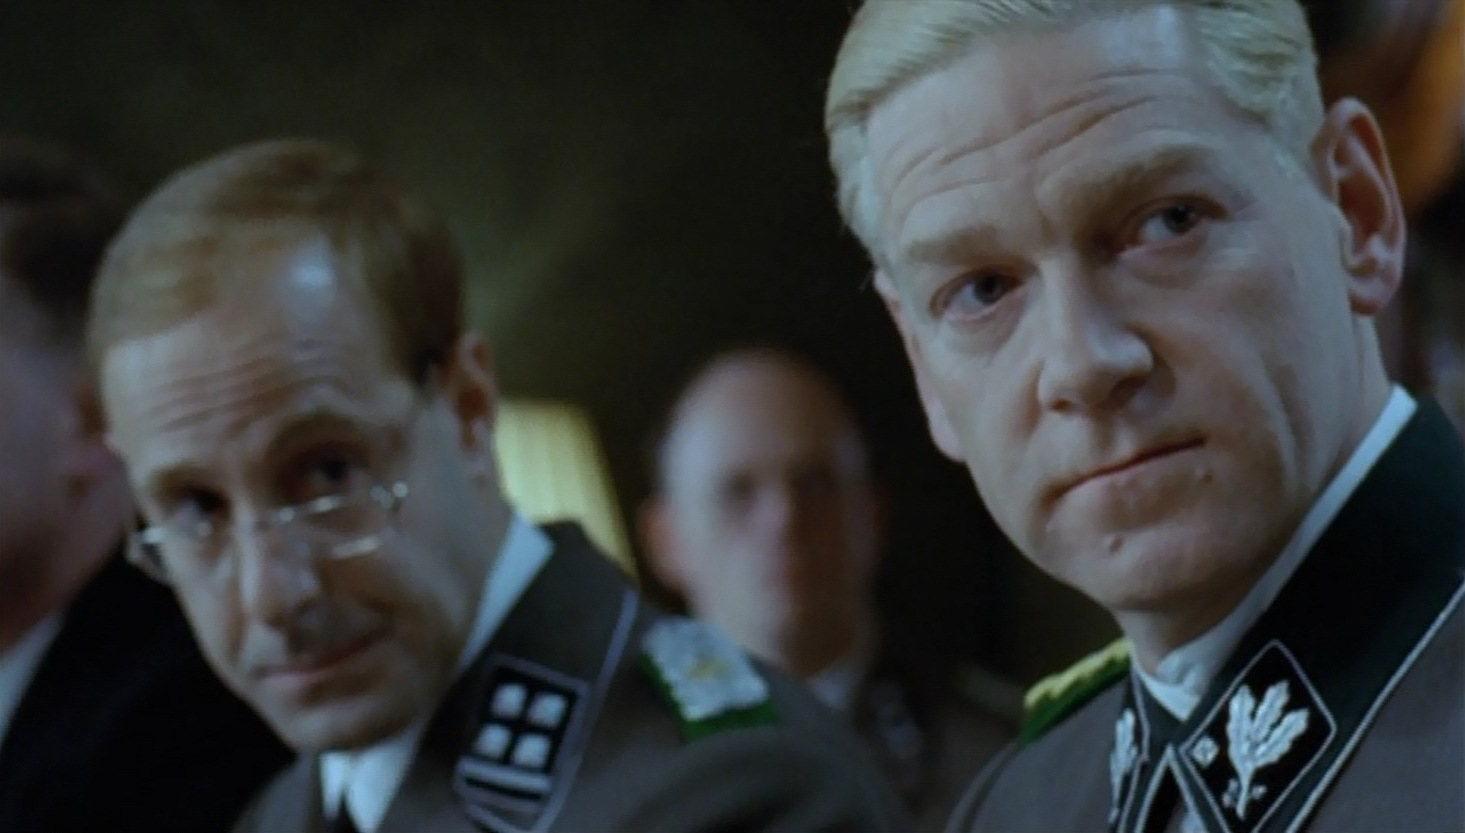 Kenneth Branagh as Reinhard Heydrich and Stanley Tucci as Adolf Eichmann in  Conspiracy